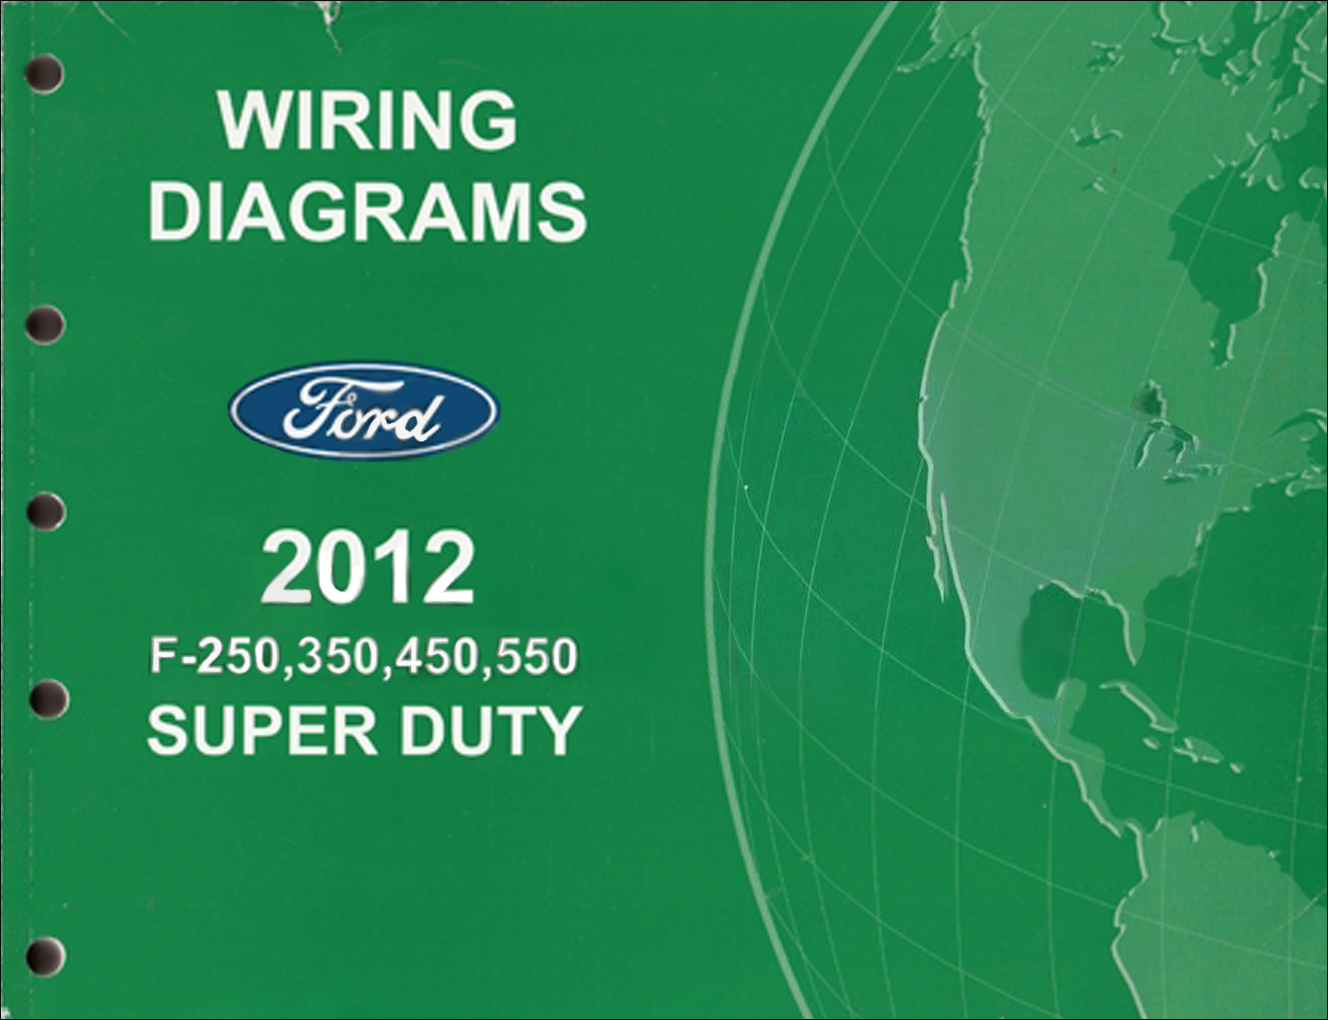 2012 Ford F 250 Thru 550 Super Duty Wiring Diagram Manual Original Ford  Flex Wiring Diagram 2012 Ford Wiring Diagram